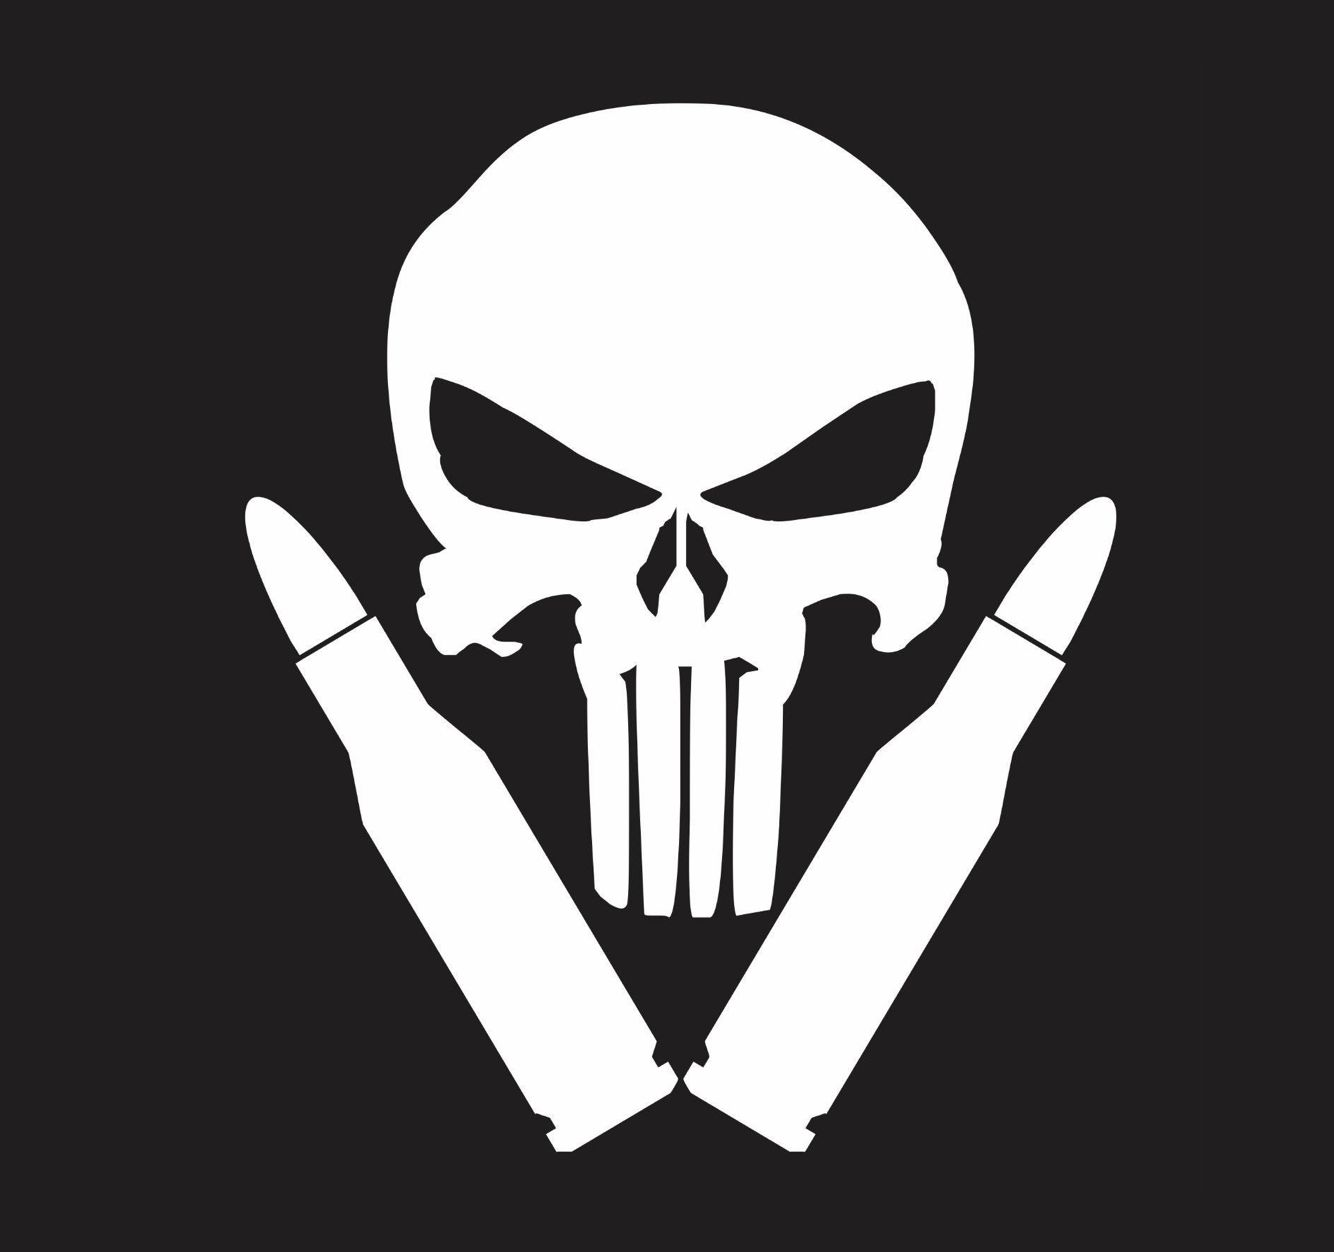 P punisher logo punisher skull decal car stickers macbook stickers sticker ideas